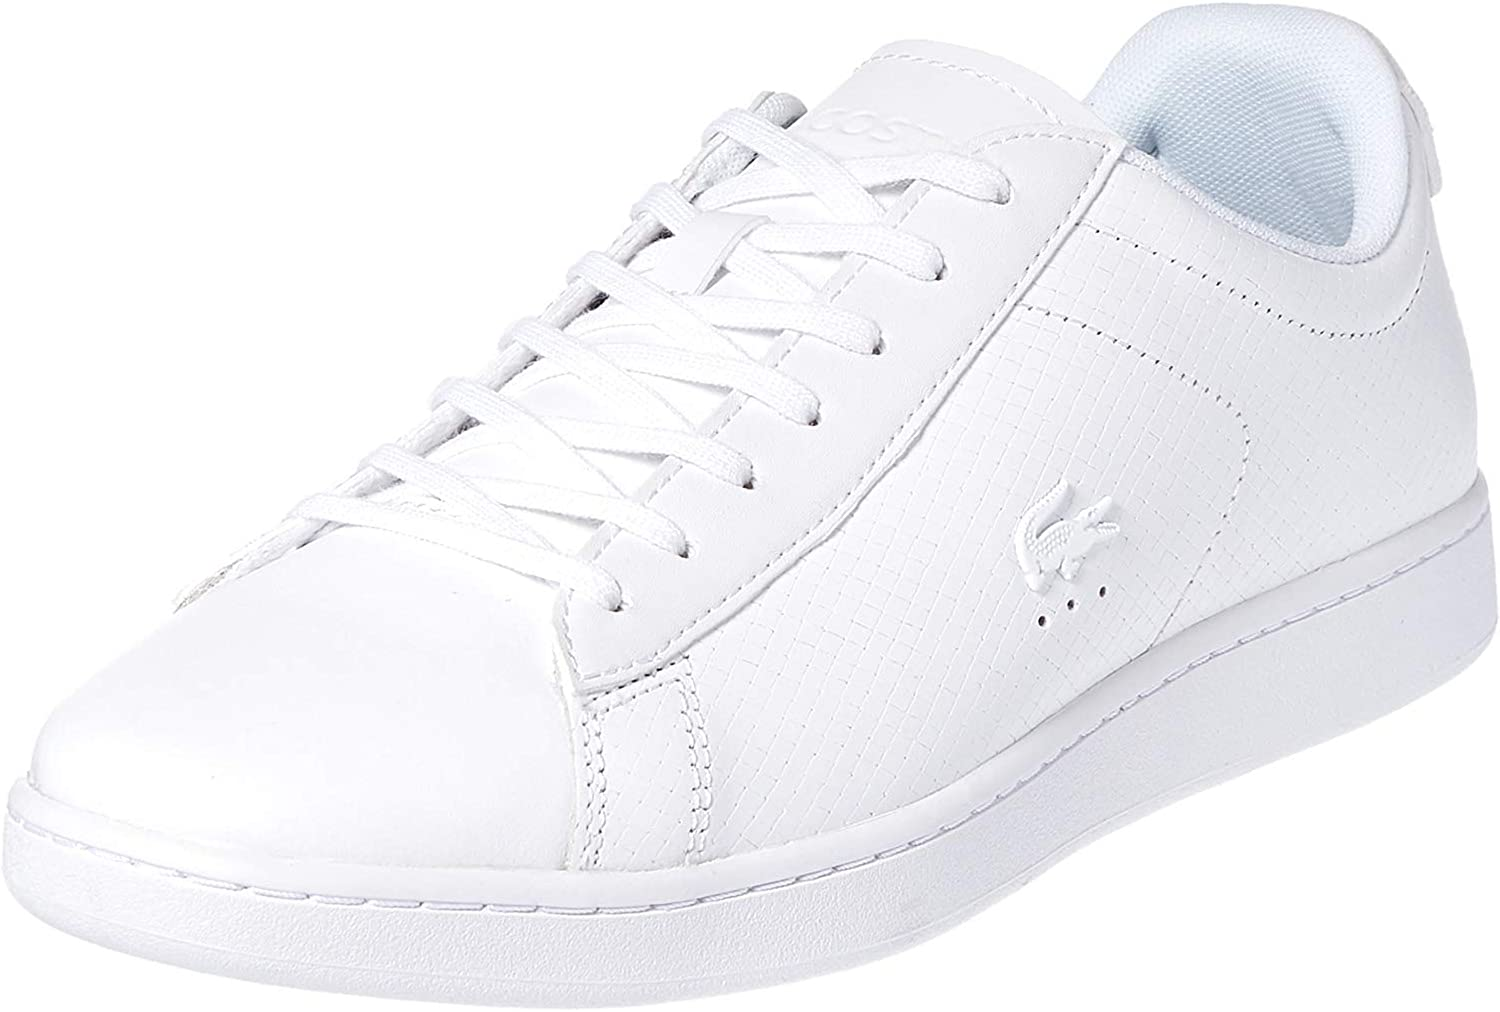 Lacoste Mens Carnaby Evo 318 Leather Ortholite Casual shoes